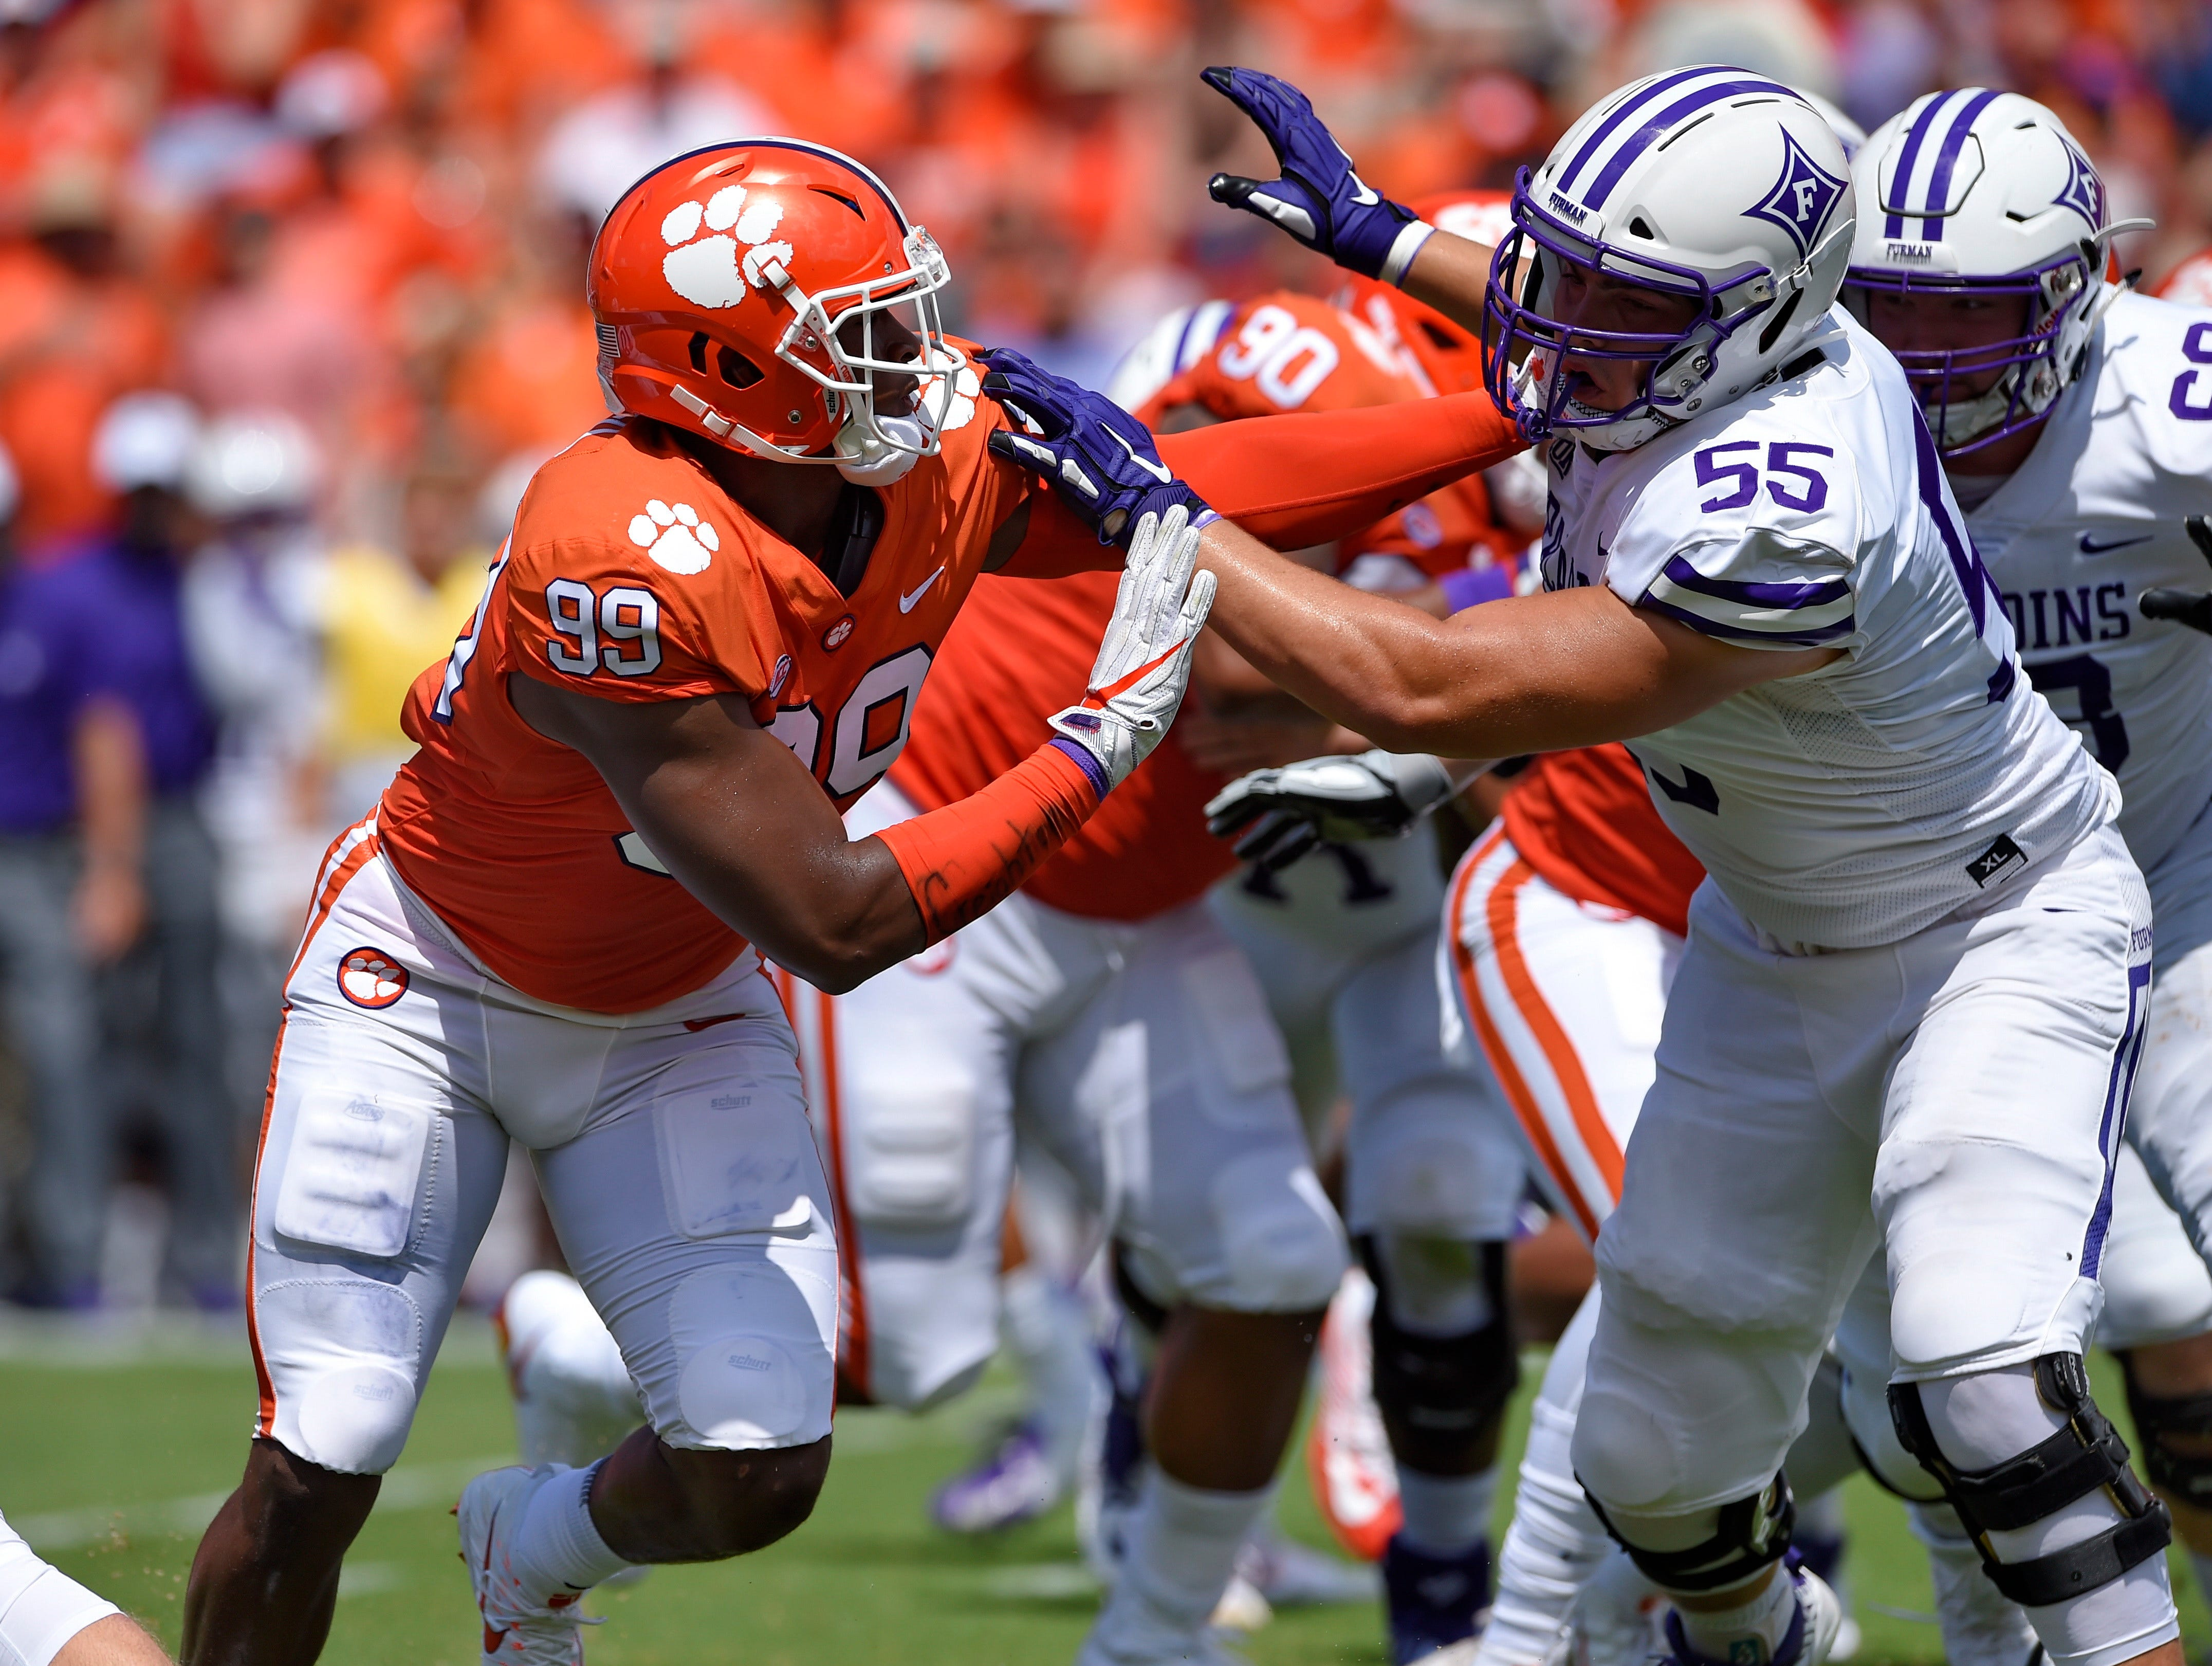 Clemson's Clelin Ferrell (99) battles with Furman's Bo Layton during the first half of an NCAA college football game Saturday, Sept. 1, 2018, in Clemson, S.C. Clemson won 48-7.